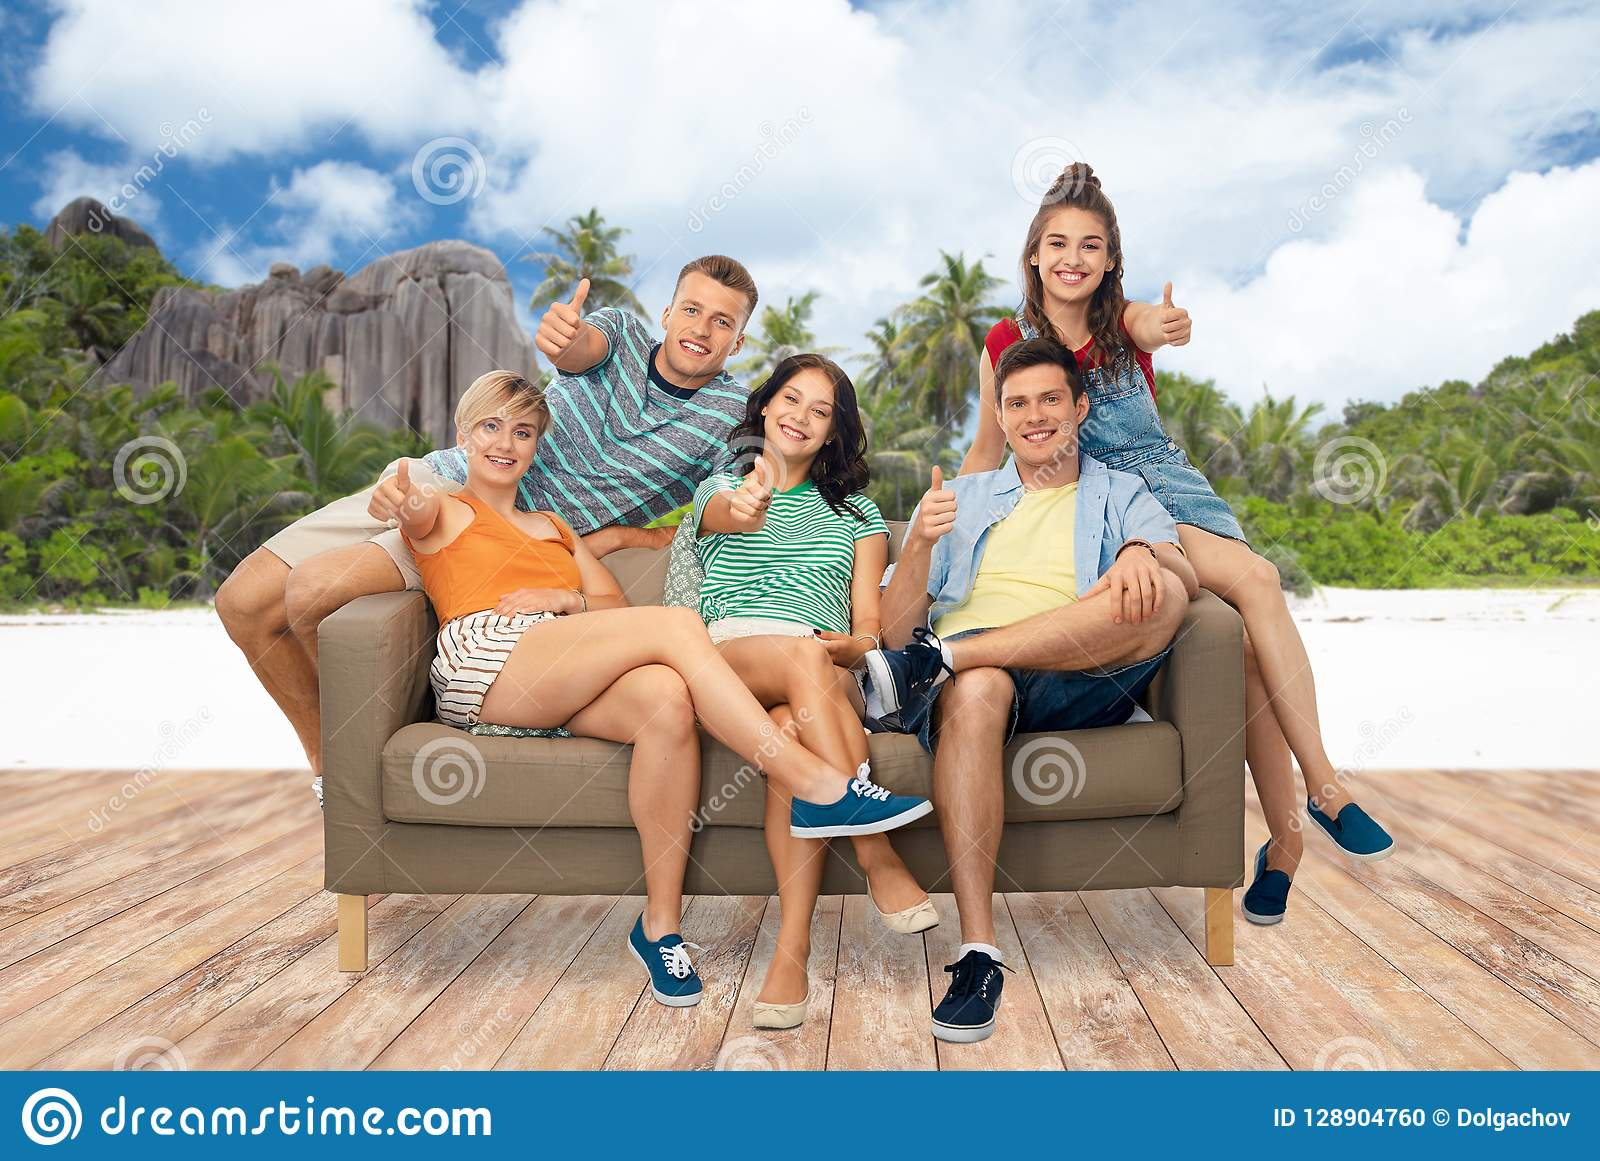 Friends Showing Thumbs Up Over Seychelles Island Stock Photo